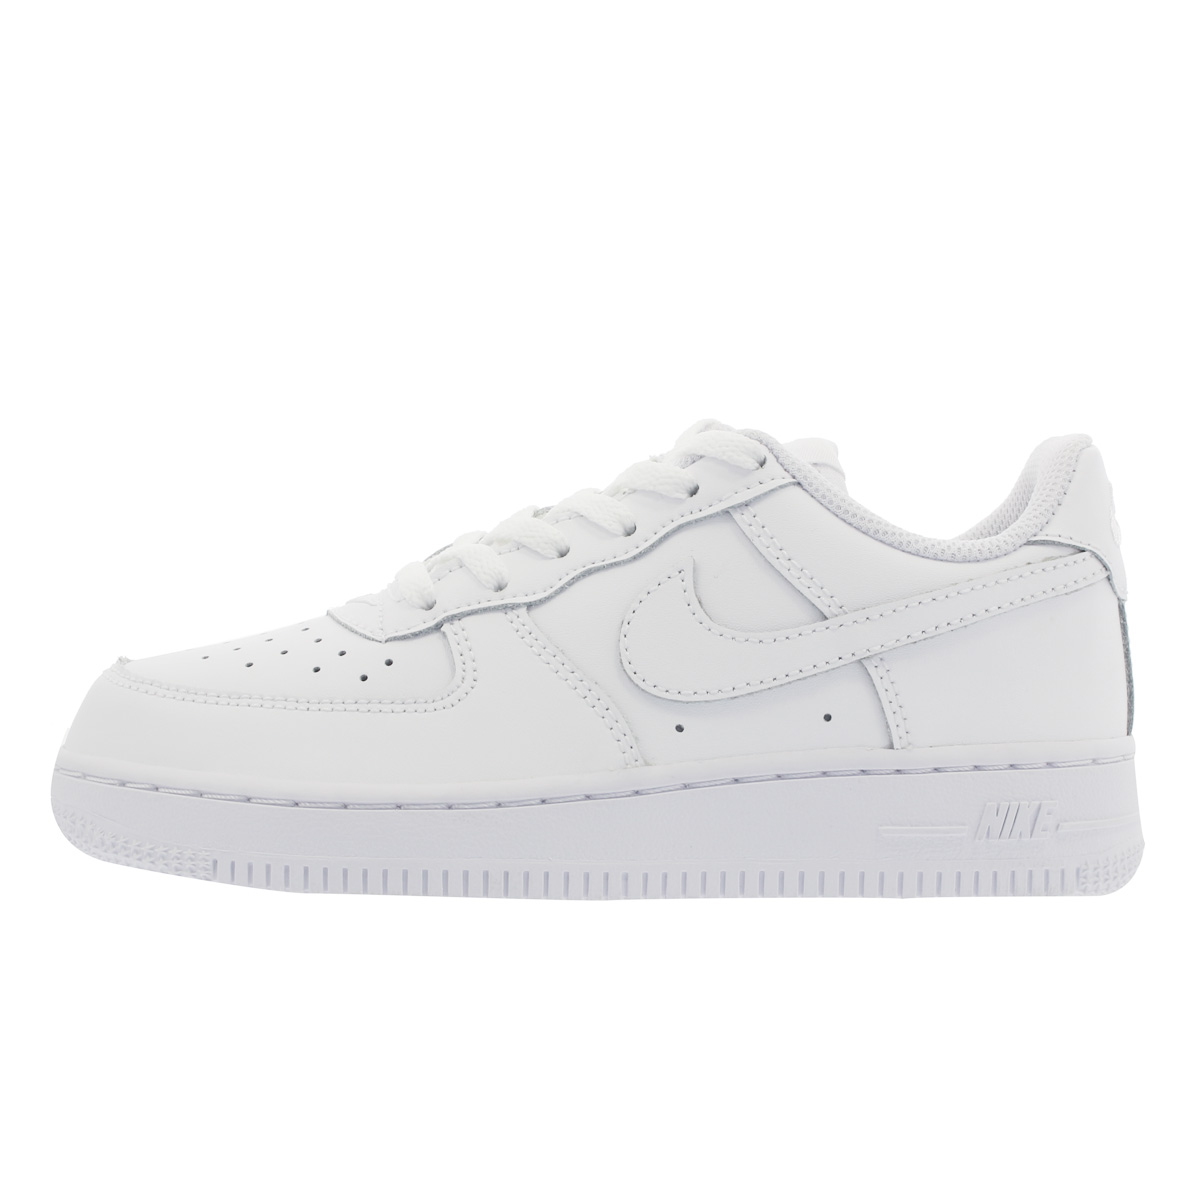 NIKE AIR FORCE 1 PS Nike air force 1 mid PS WHITEWHITEWHITE 314,193 117